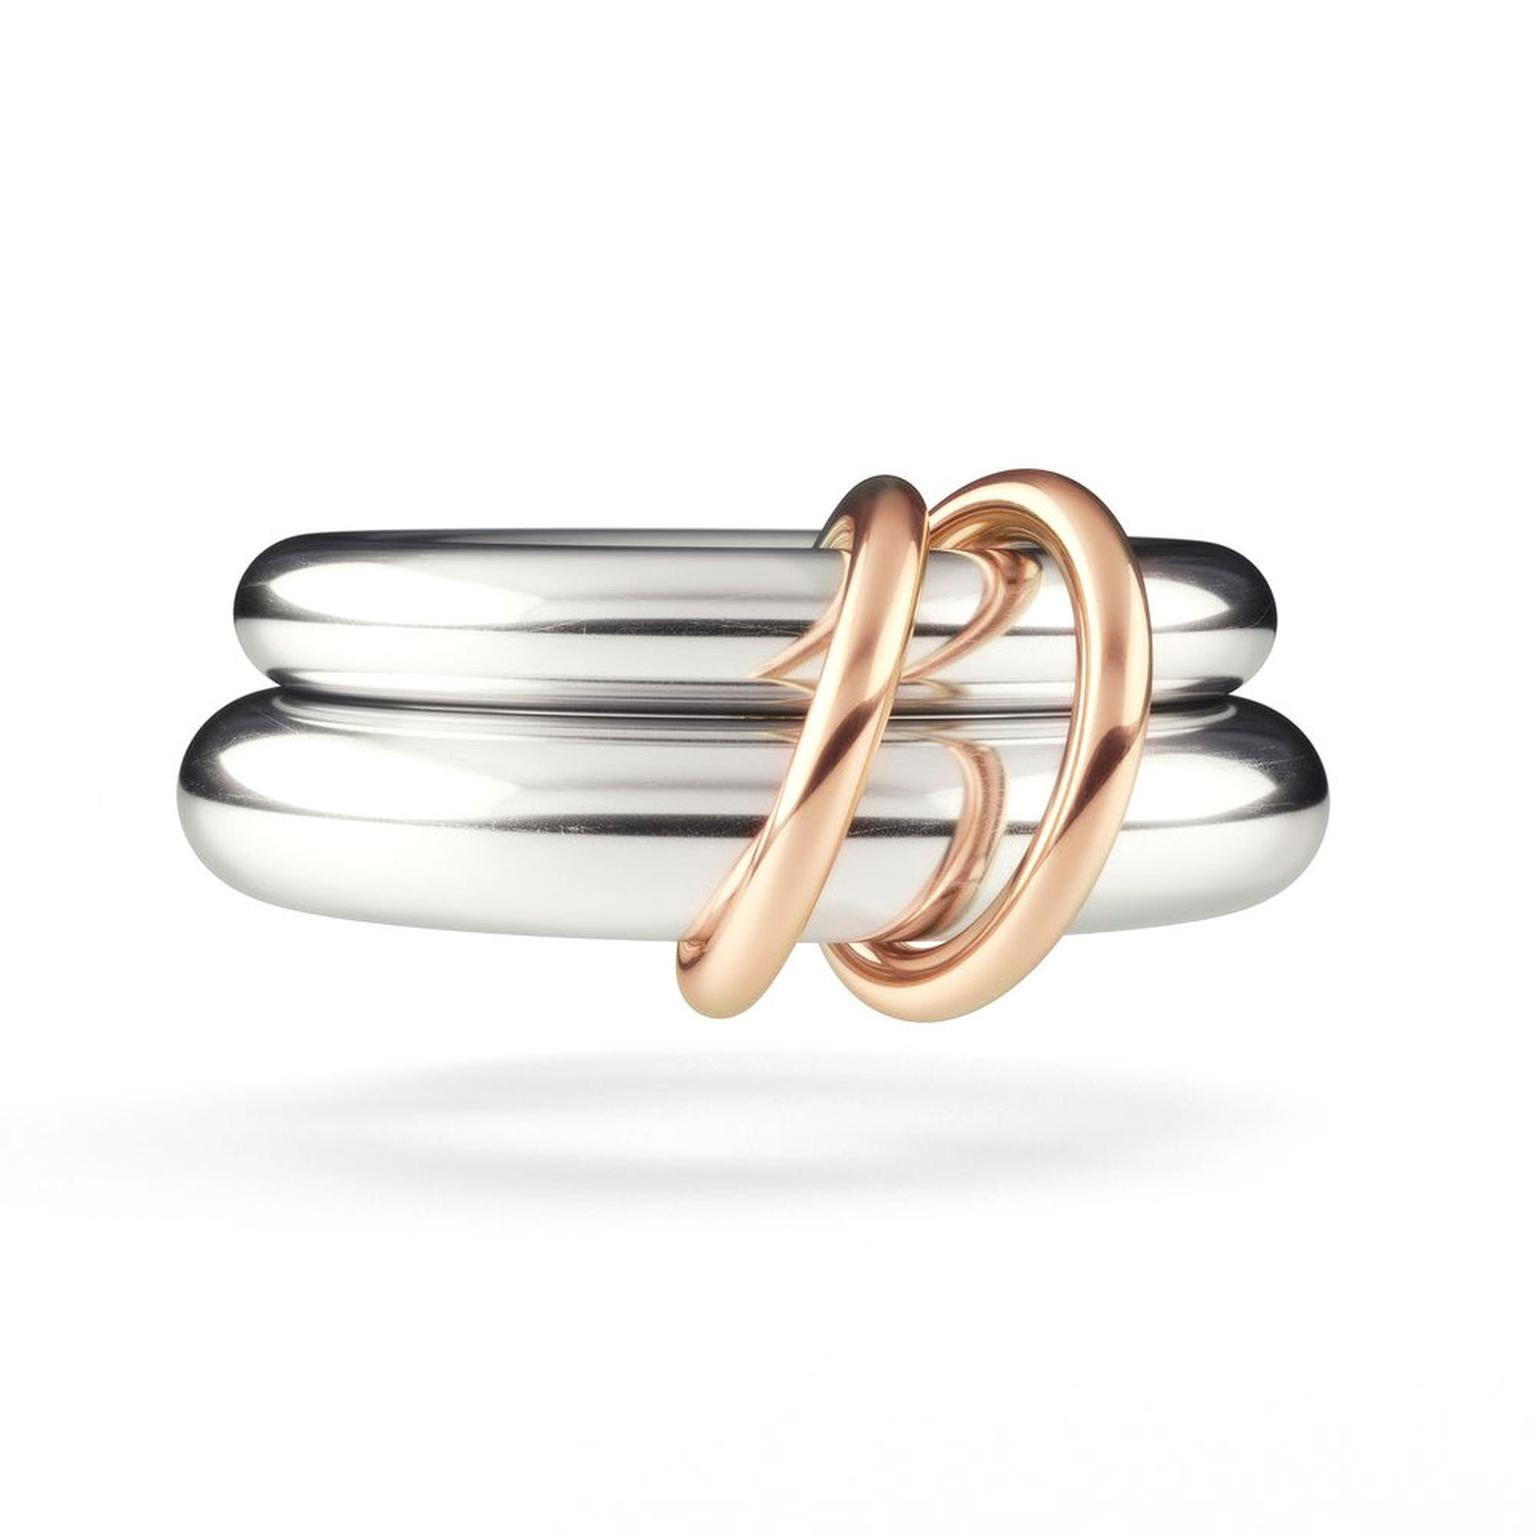 Spinelli Kilcollin Virgo ring